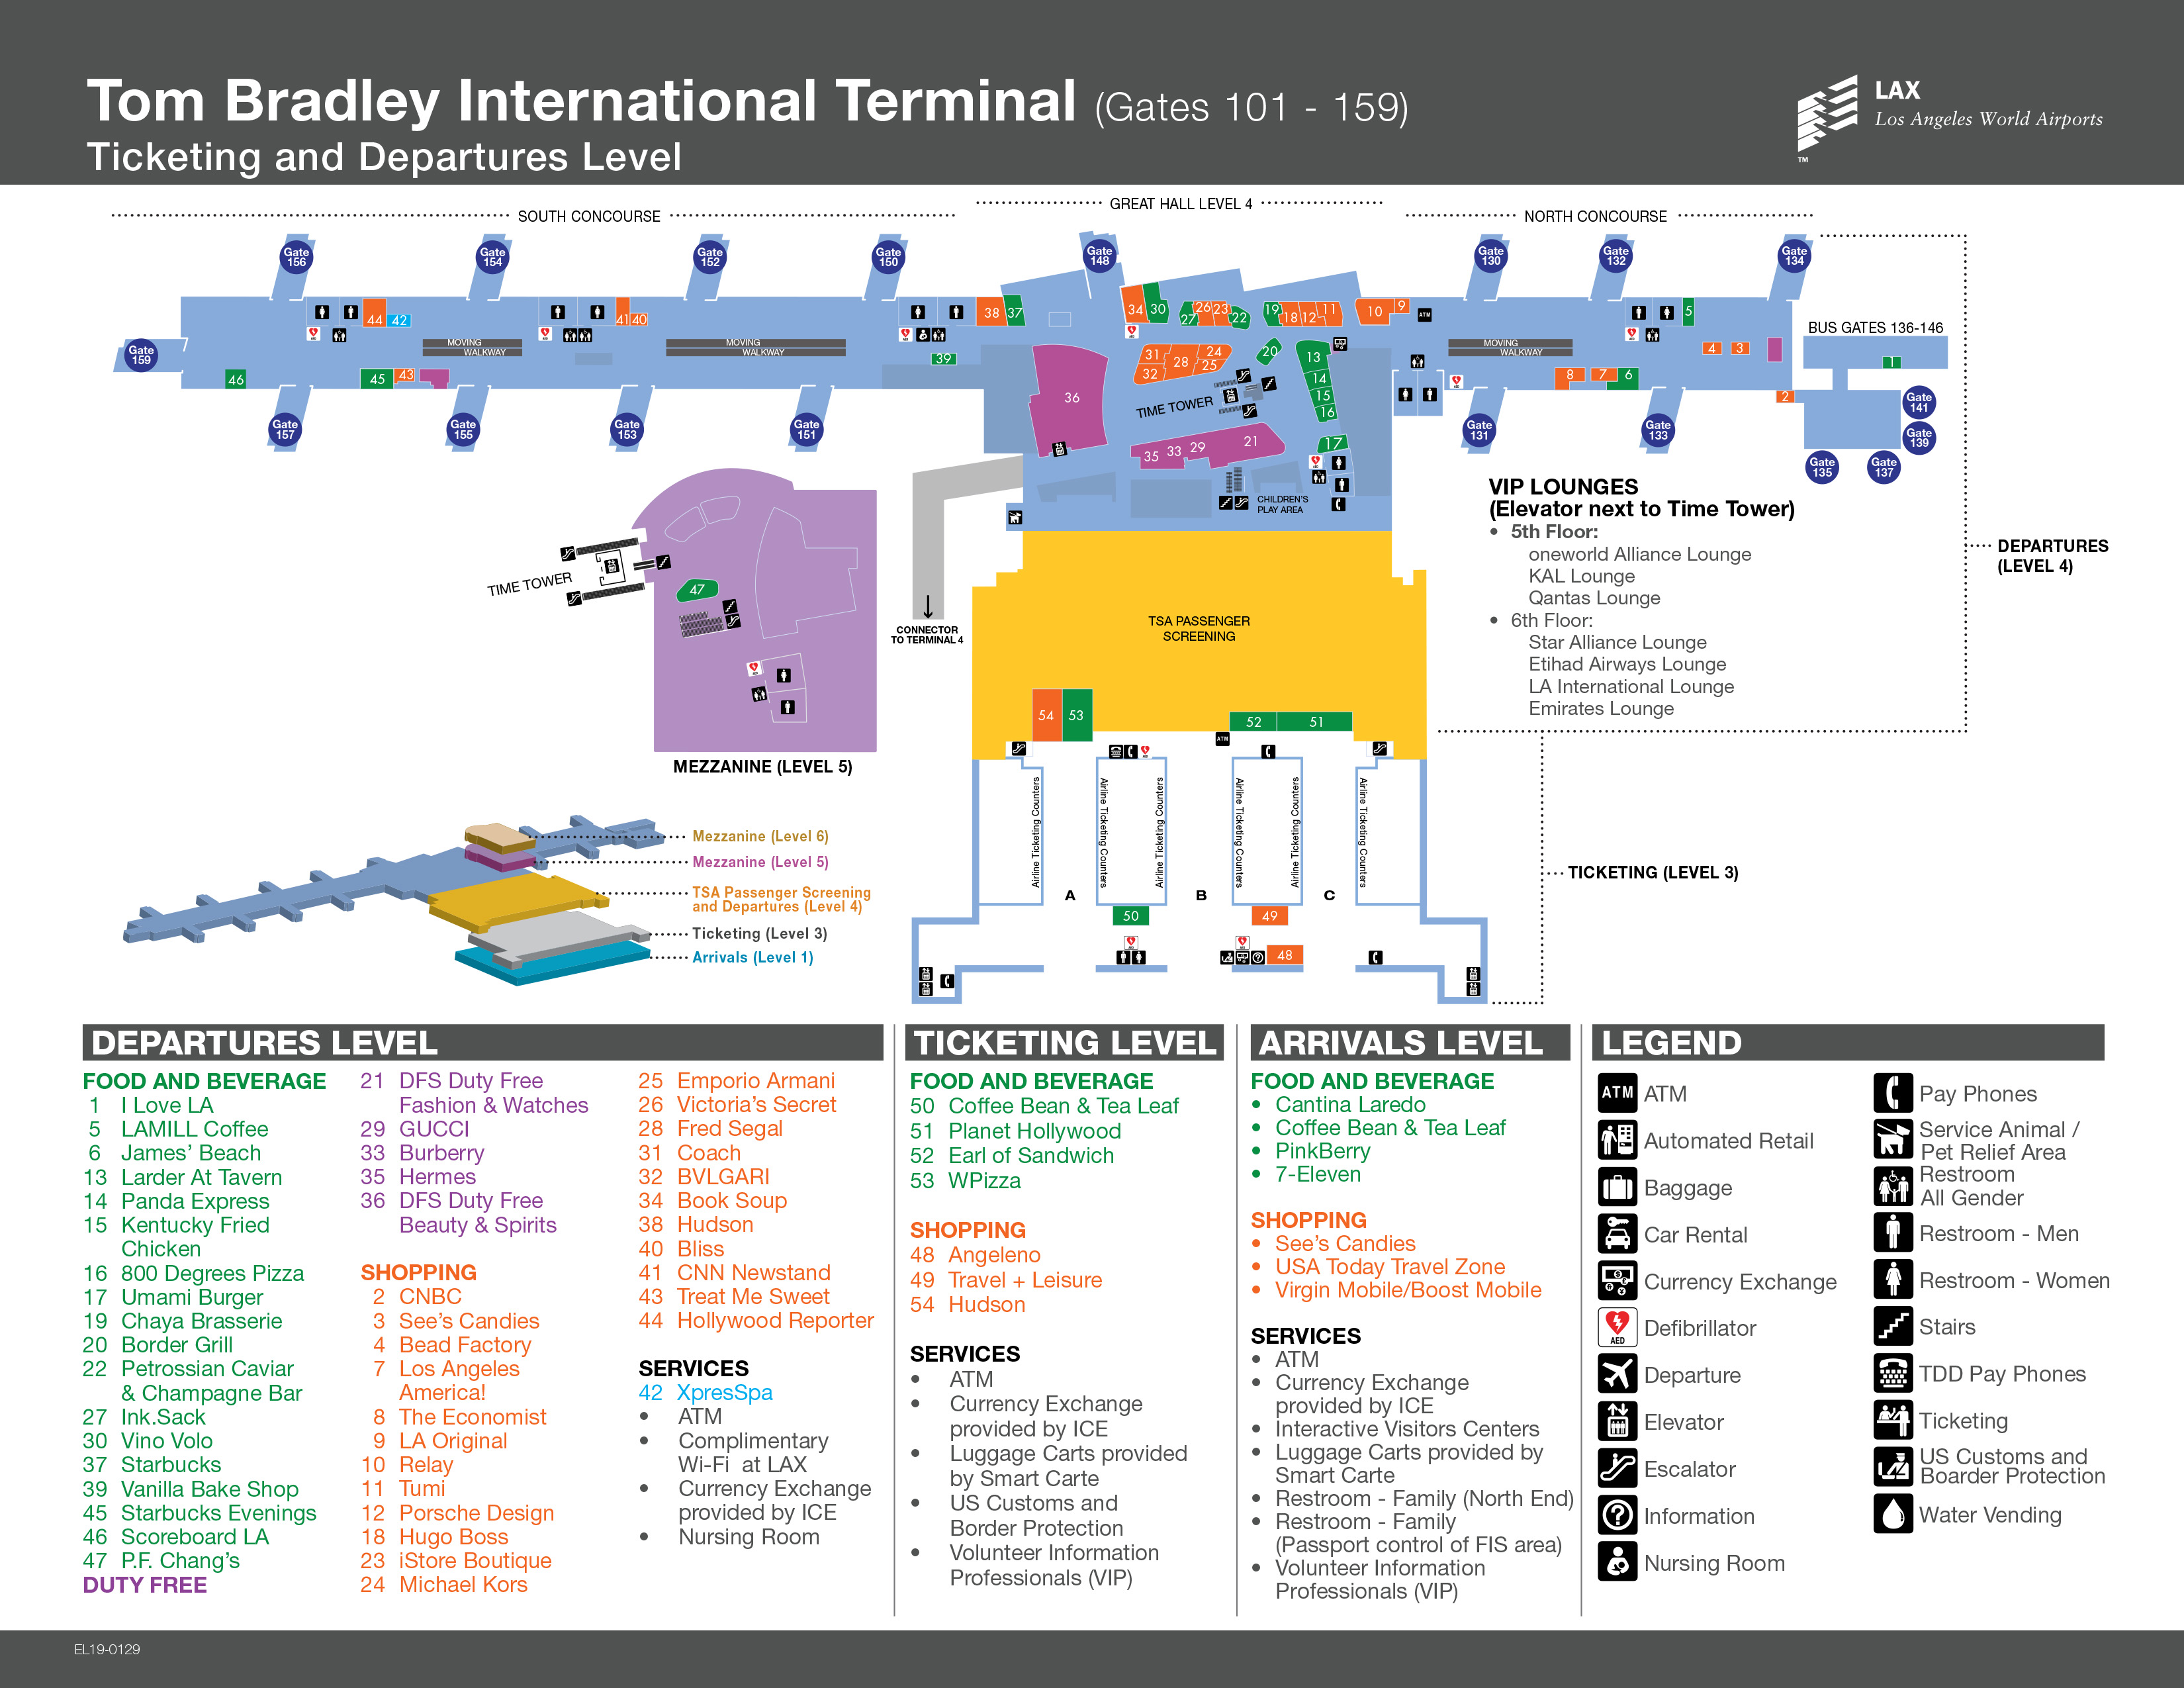 Los Angeles Airport Map (LAX) - Printable Terminal Maps ... on dca map, george bush intercontinental airport, mccarran international airport, denver international airport, phoenix sky harbor international airport, united airlines, delta air lines, mdw map, rdu map, iah map, john f. kennedy international airport, dtw map, jfk map, san francisco international airport, orlando international airport, london heathrow airport, future history map, virgin america, ontario airport map, spirit airlines, london heathrow airport map, bos map, las map, laguardia airport, ind map, southwest airlines, alaska airlines, miami international airport, msp map, tom bradley international terminal map, american airlines, hnl map, dallas-fort worth international airport, san map, sfo map, frontier airlines, long beach airport map, ewr map, dfw map, honolulu international airport,